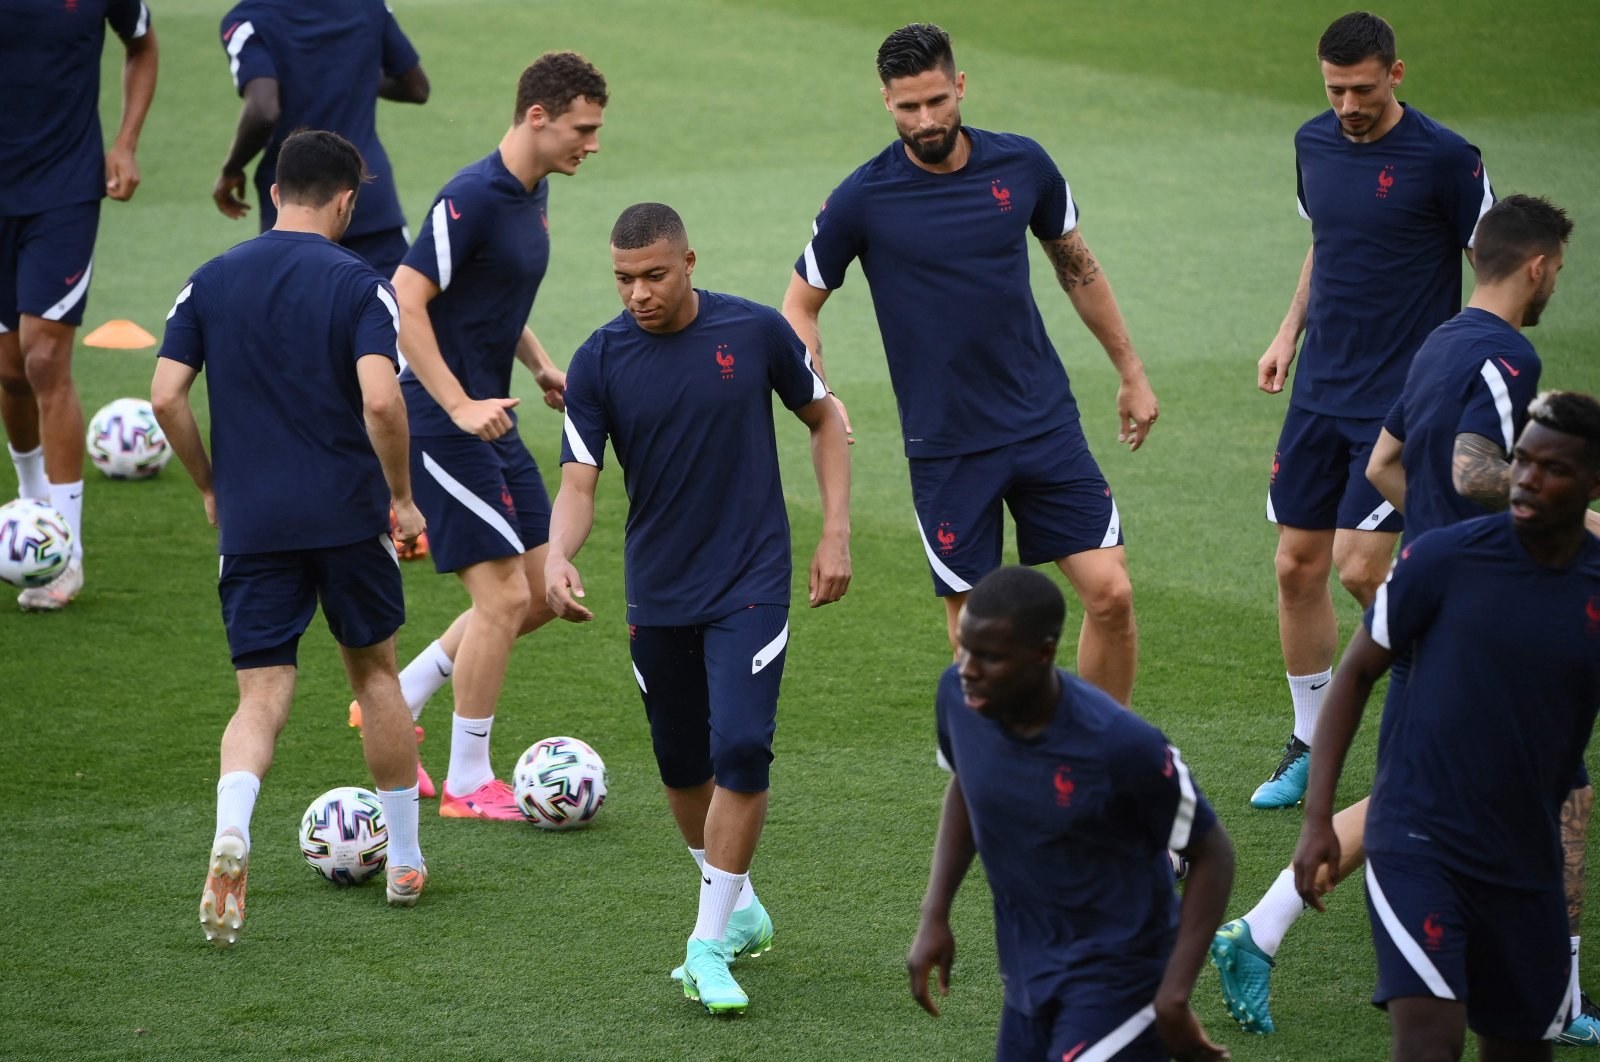 France forward Kylian Mbappe (C) and teammates take part in a training session at the Hidegkuti Stadium, Budapest, Hungary, June 22, 2021. (AFP Photo)